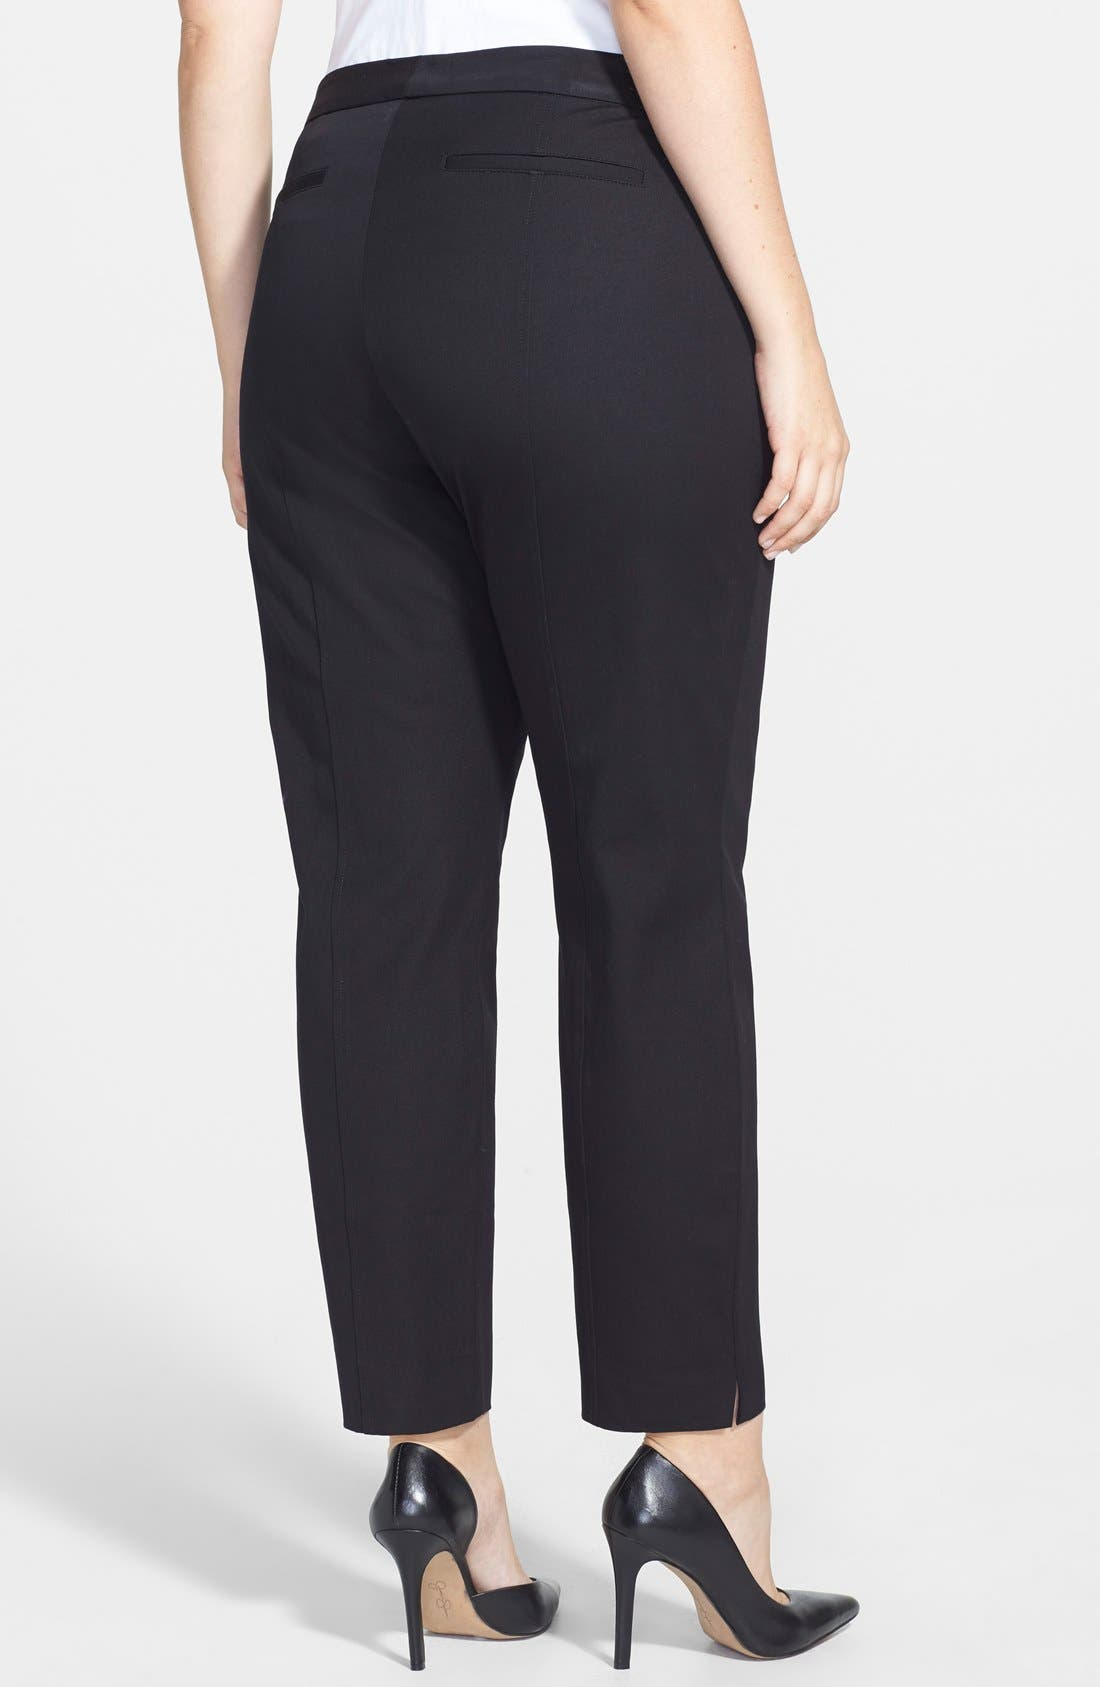 Alternate Image 2  - NYDJ 'Fashion' Two-Way Stretch Slit Ankle Pants (Plus Size)